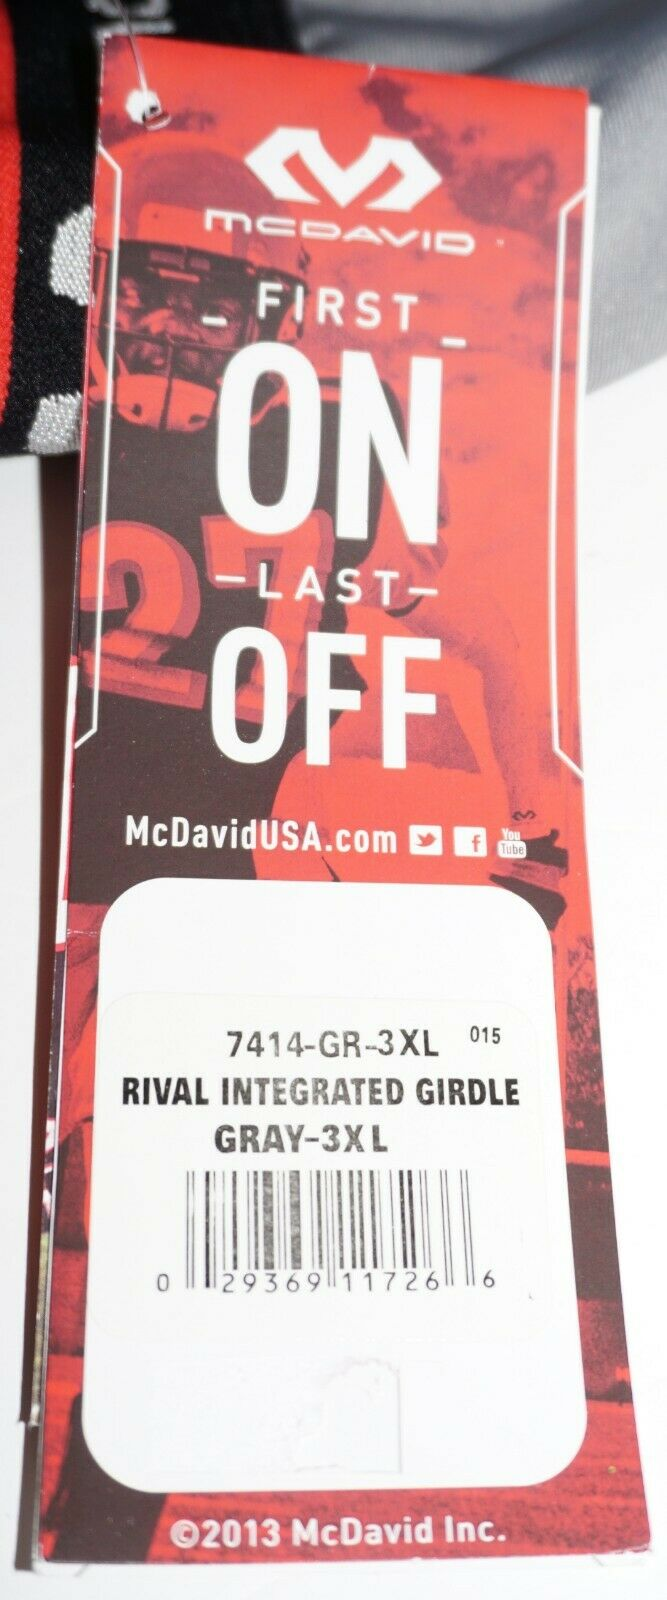 MCDAVID RIVAL SHORT SR 3XL - GIRDLE & HARD-SHELL THIGH GUARDS HIP PADS 46-50 NEW - EZ Monster Deals